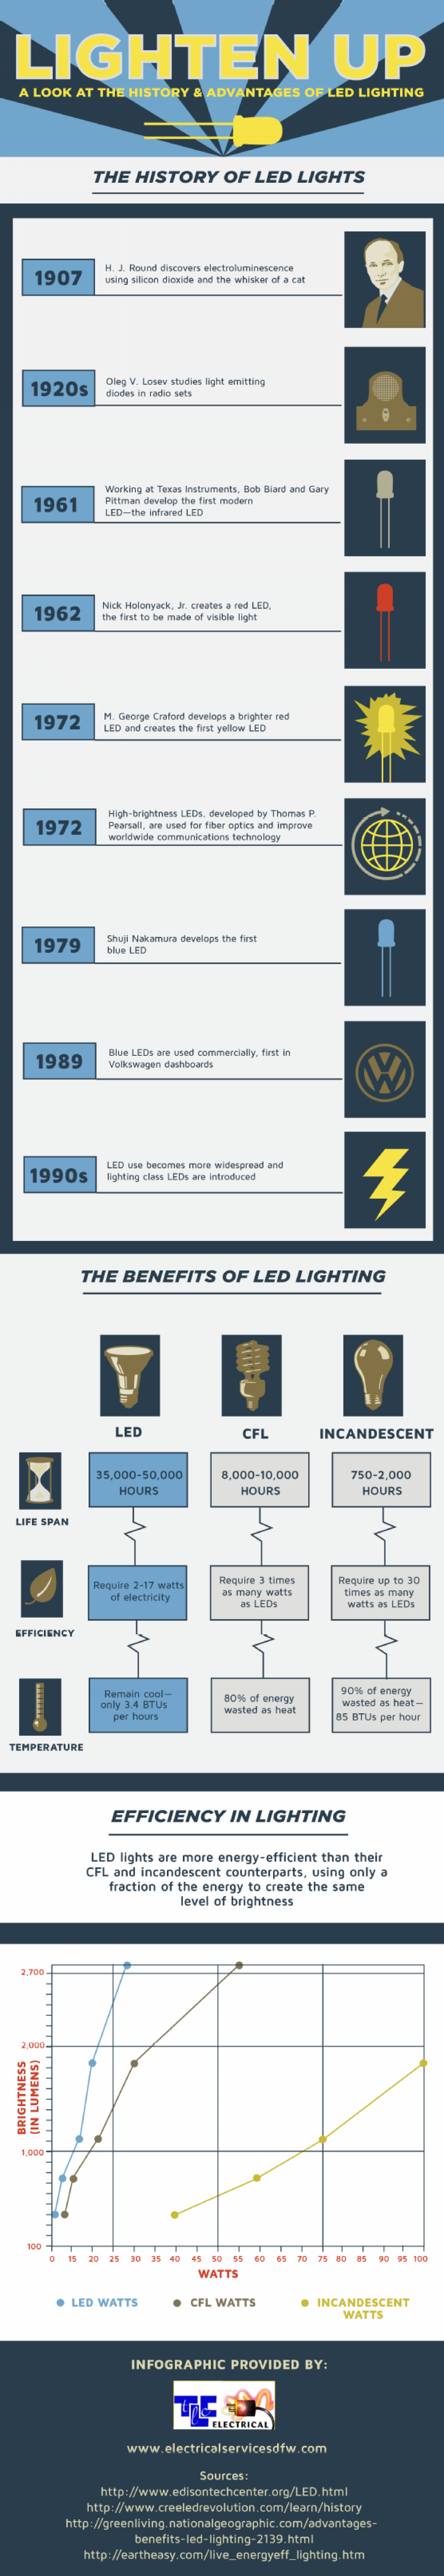 Lighten Up: A Look at the History and Advantages of LED Lighting Infographic